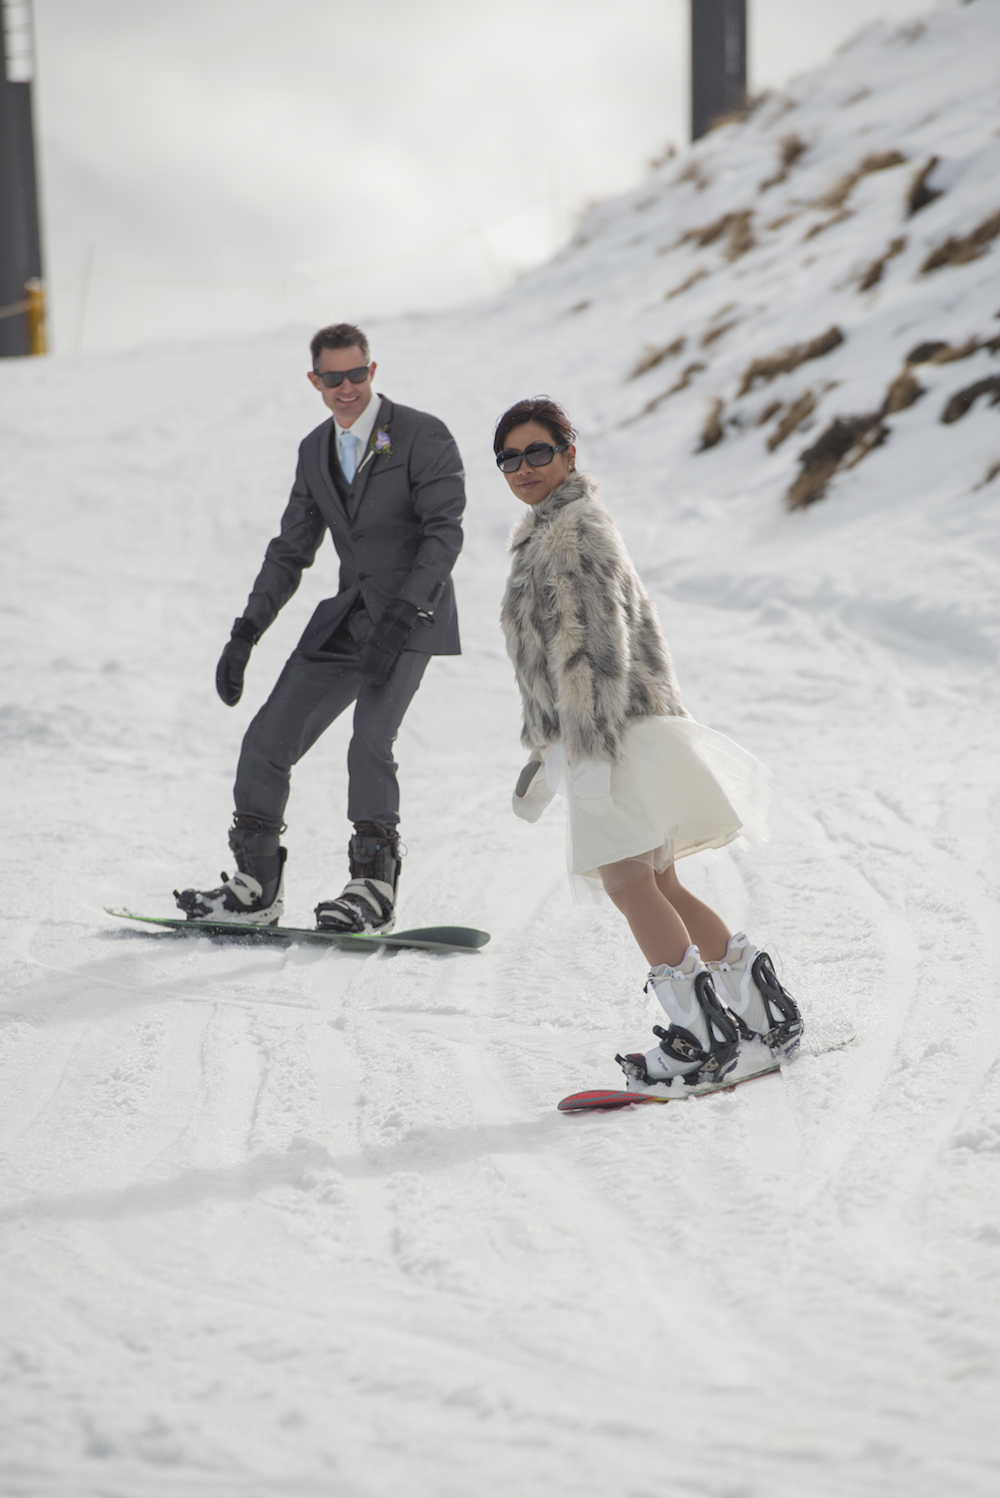 snowboarding down coronet on our wedding day